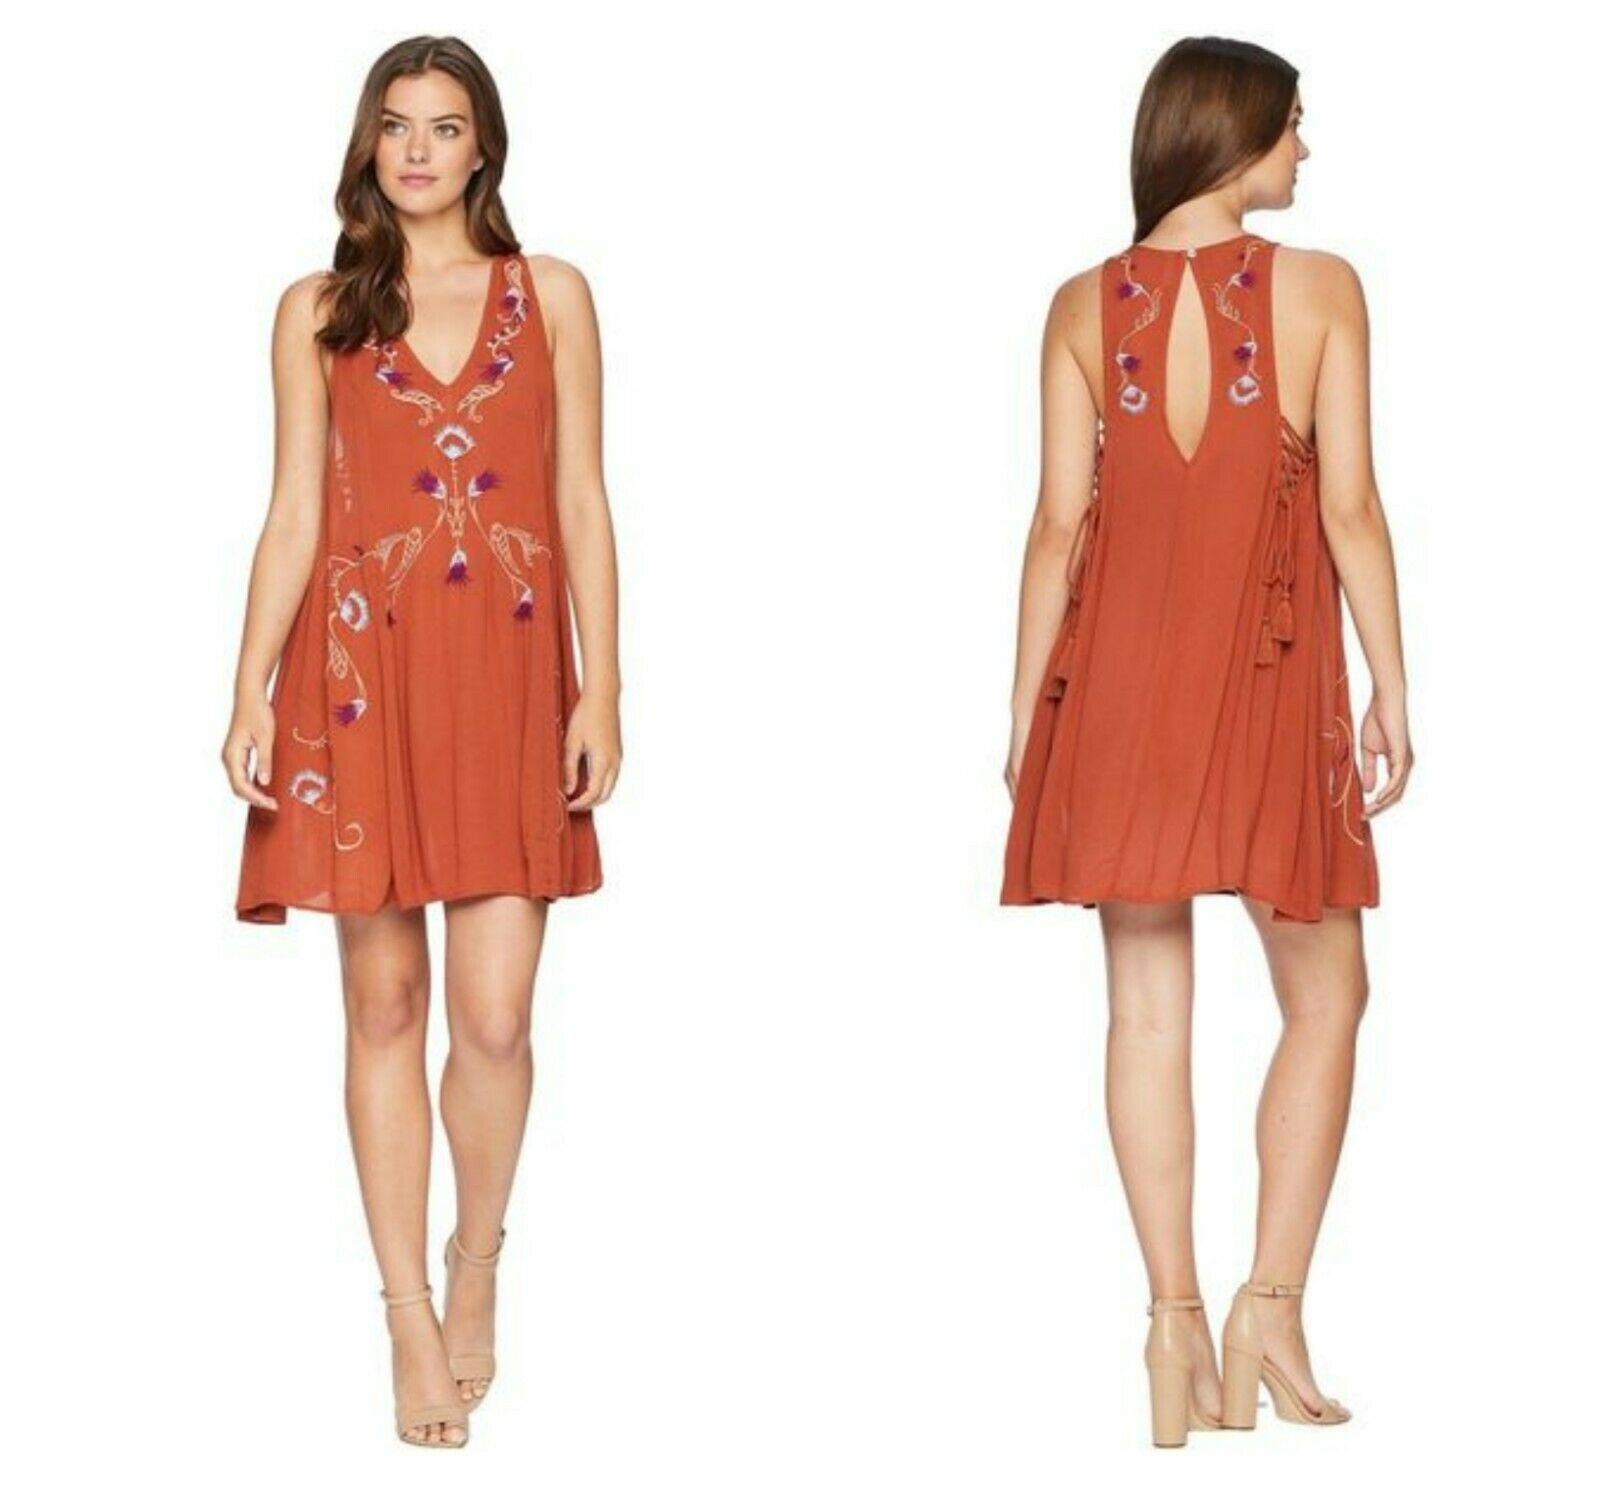 FREE  PEOPLE  TERRACOTTA  ADELAIDE EMBROIDERED SLIP  DRESS   Sz  XS  NEW    98